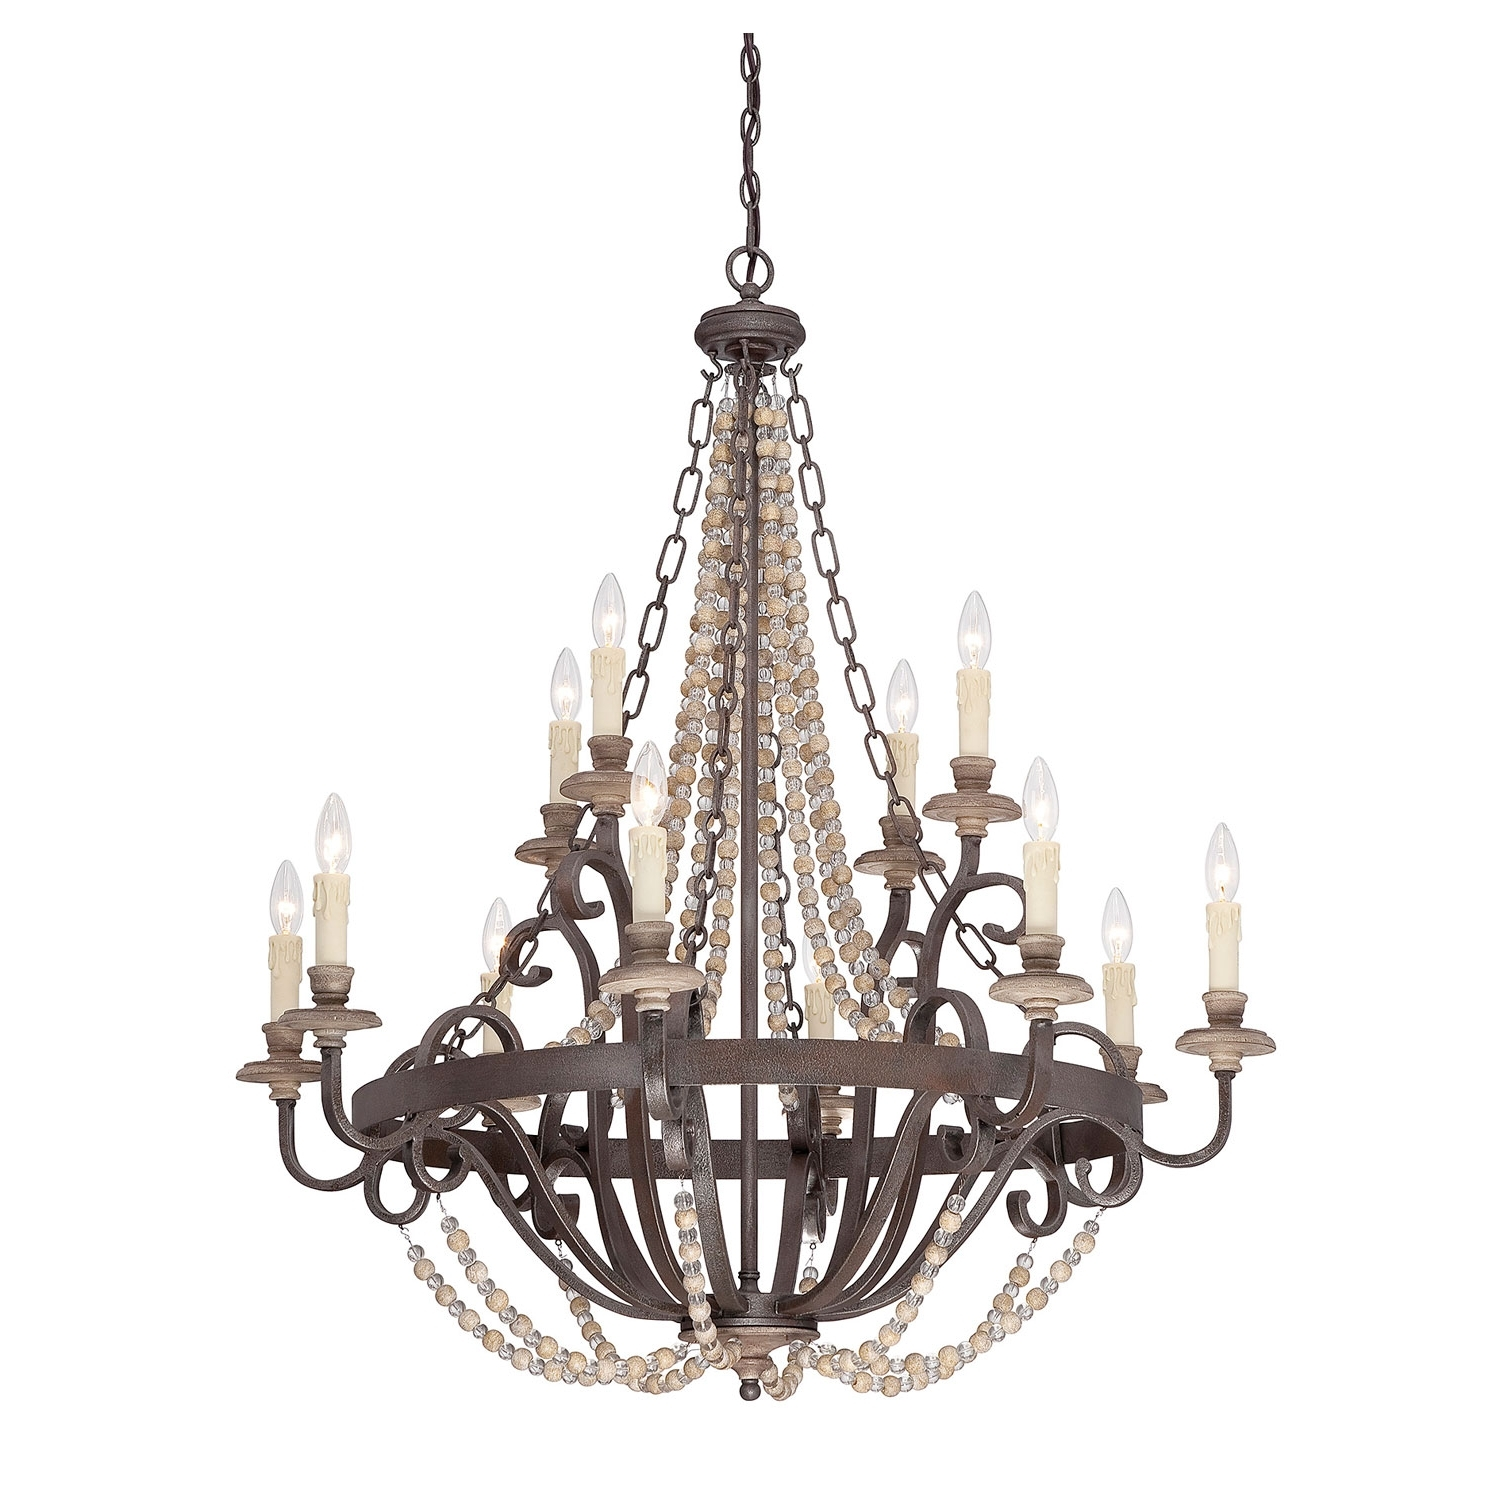 Candle Light Chandelier Regarding Widely Used Savoy House Mallory Bronze 12 Light Chandelier On Sale (View 3 of 15)